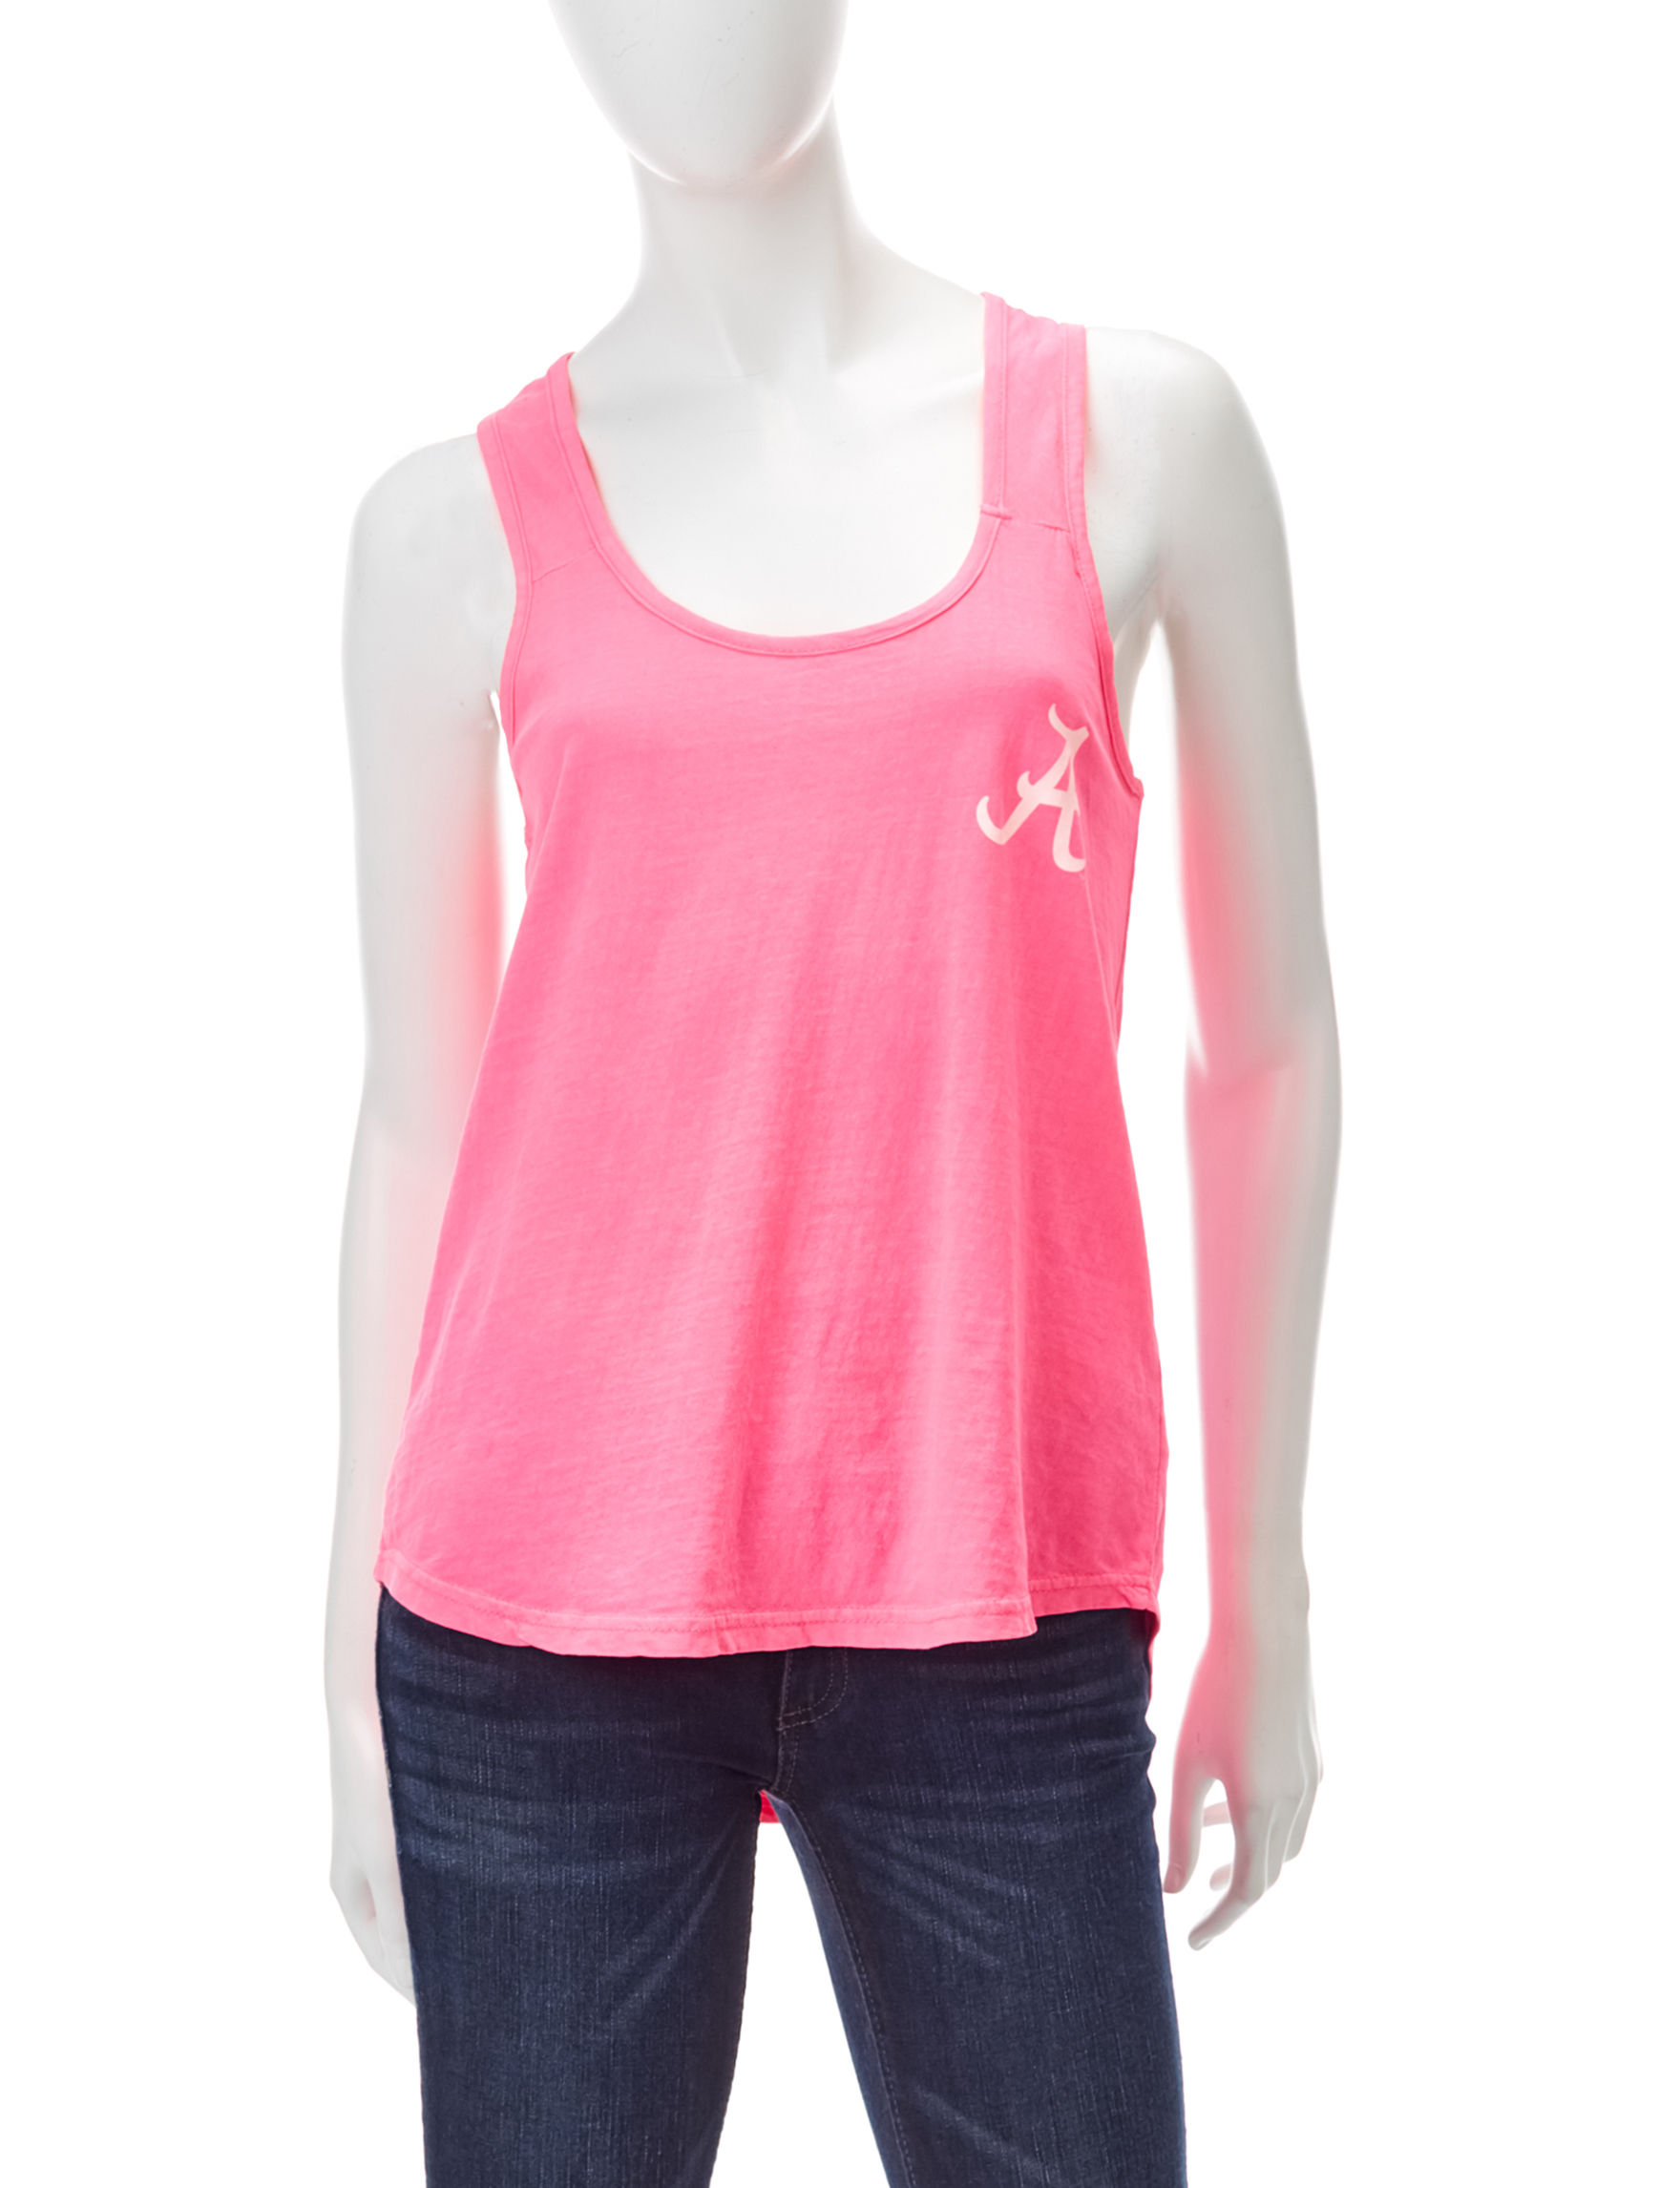 NCAA Pink Tees & Tanks